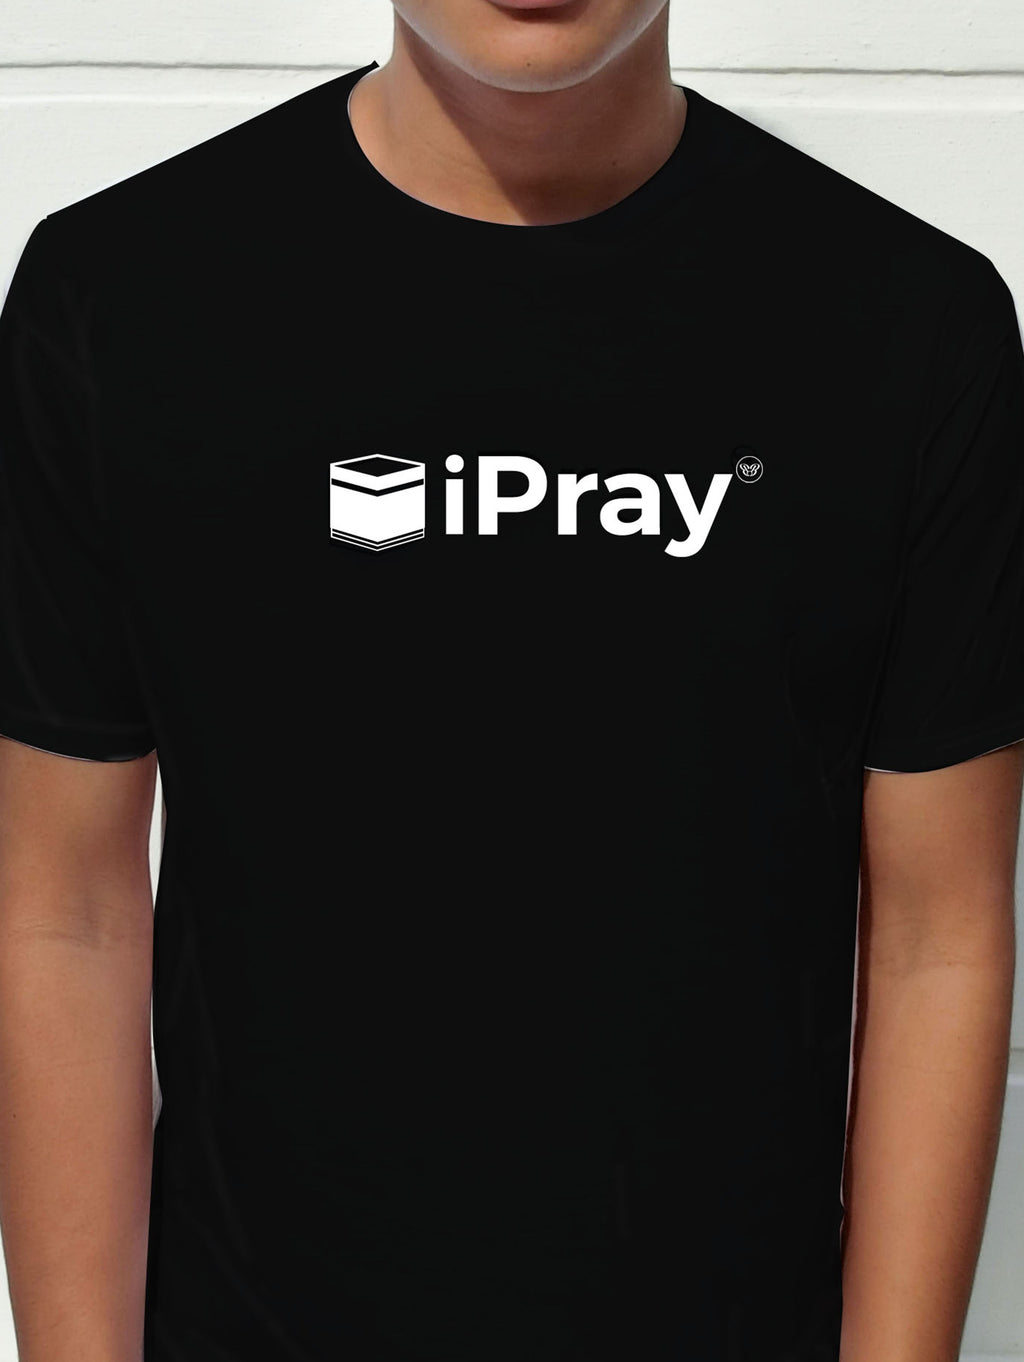 Tshirt - iPray in Black